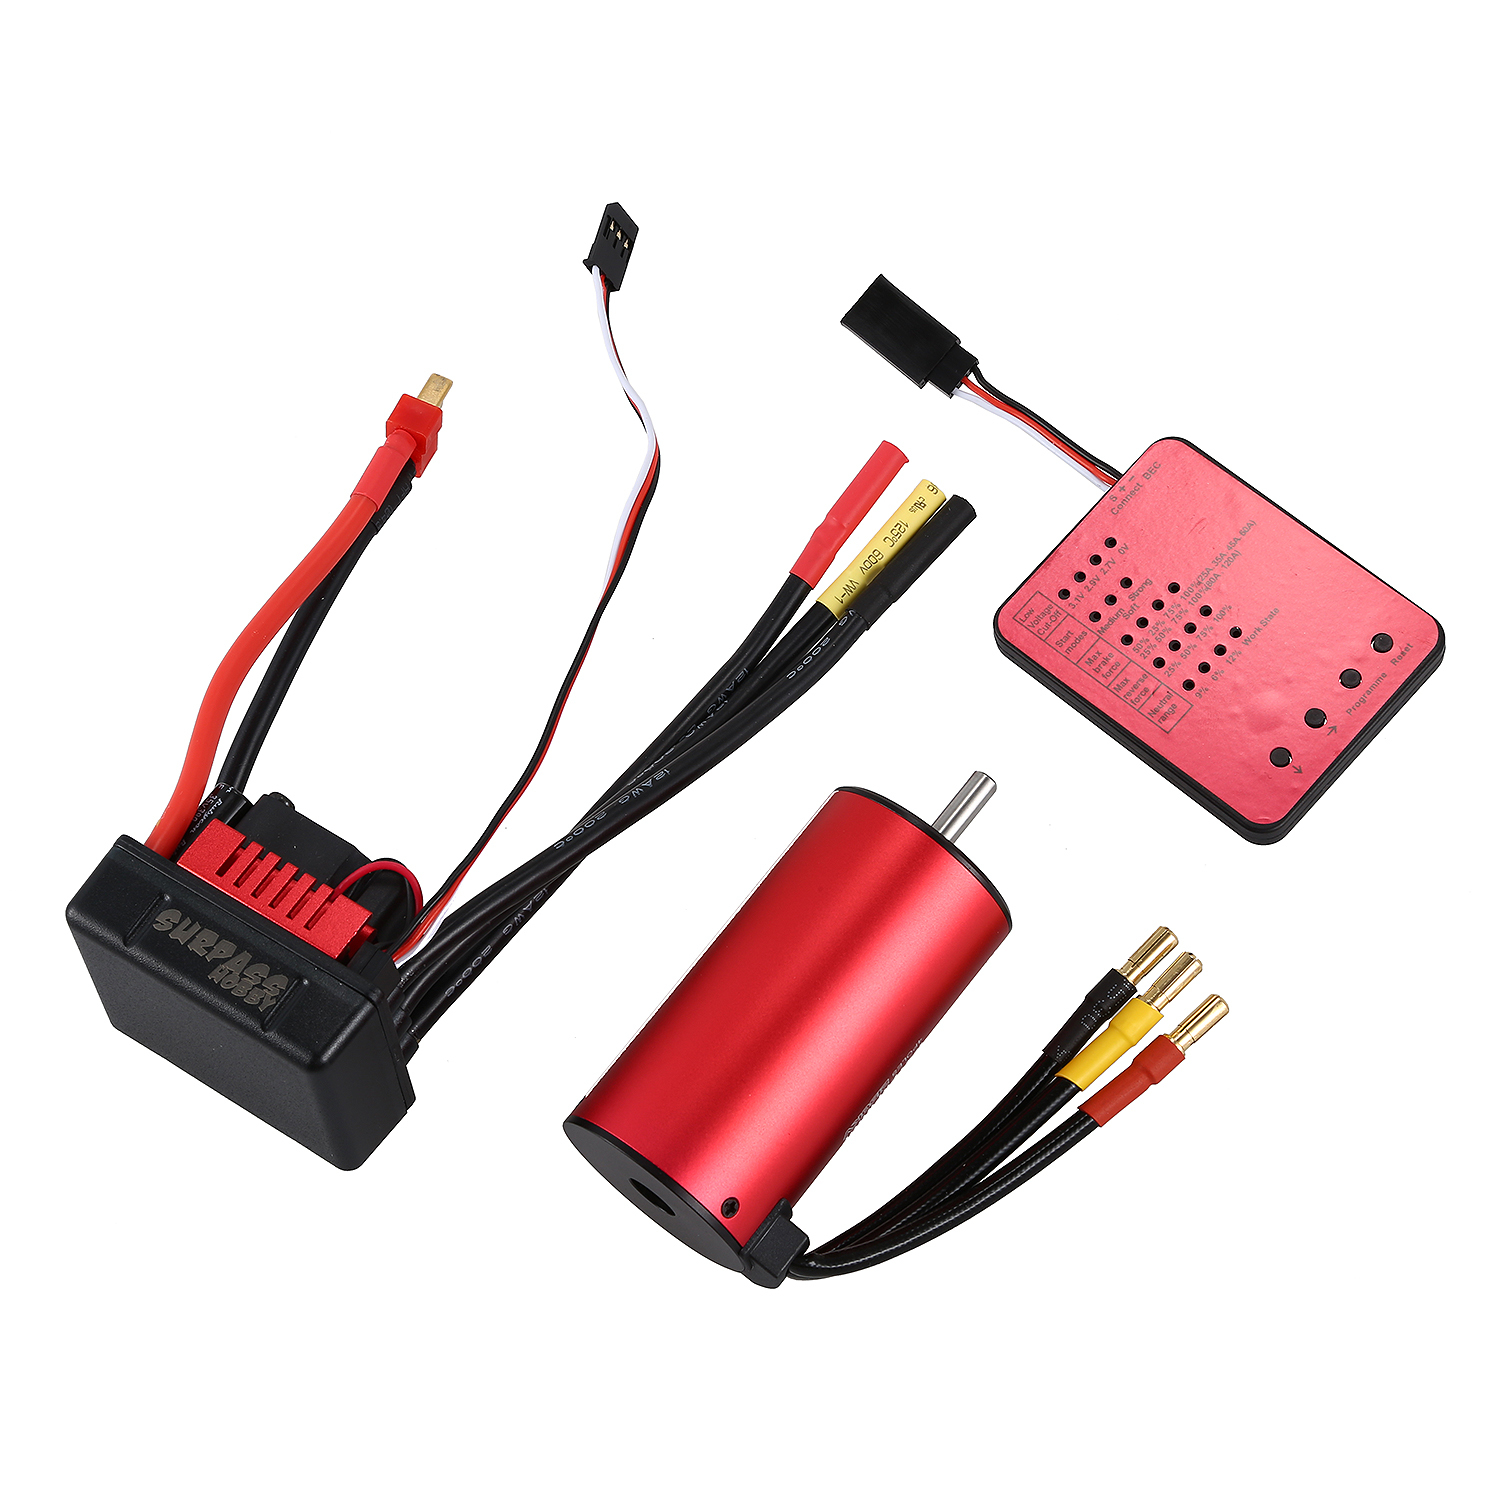 FBIL-SURPASS HOBBY S3670 2150KV Sensorless Brushless Motor 120A Brushless ESC and Program Card Combo Set for 1/8 RC Car Truck original goolrc s3650 3900kv sensorless brushless motor 60a brushless esc and program card combo set for 1 10 rc car truck